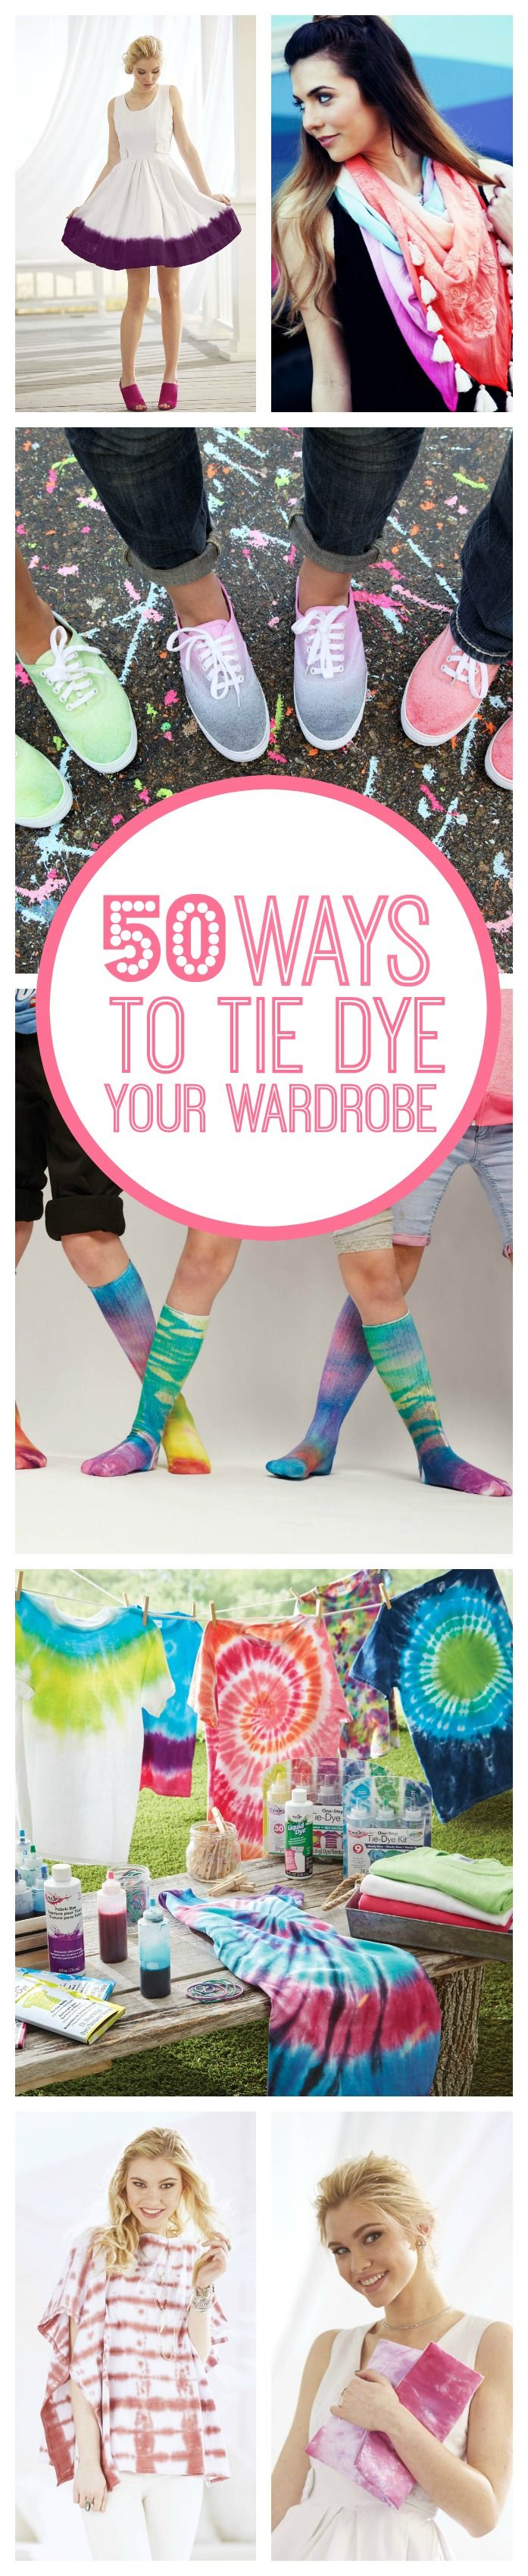 Learn how to tie dye with these fun DIYs! Tie dye is not just for shirts! You can tie dye anything you own! Turn your closet into tie dye heaven this summer with these fun techniques!